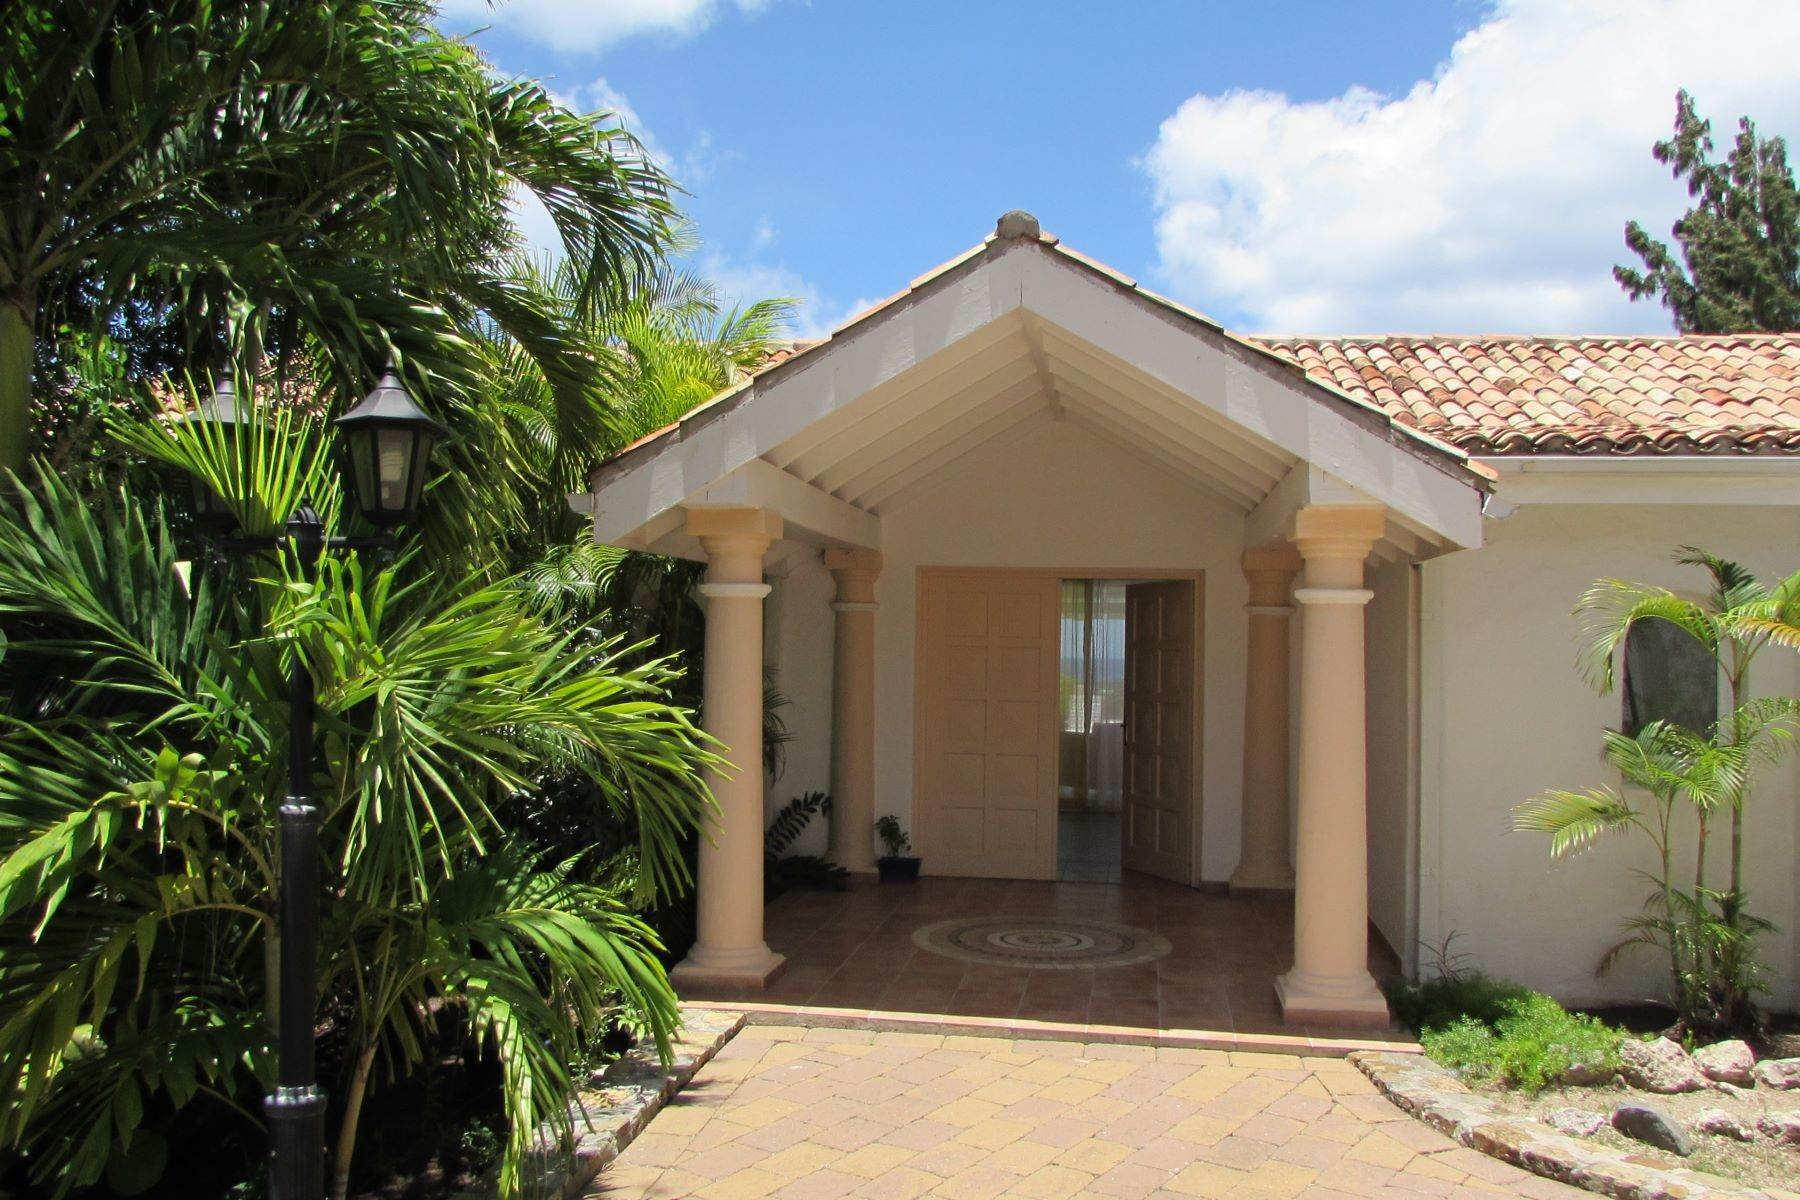 3. Single Family Homes for Sale at La Provençale Terres Basses, 97150, St. Martin